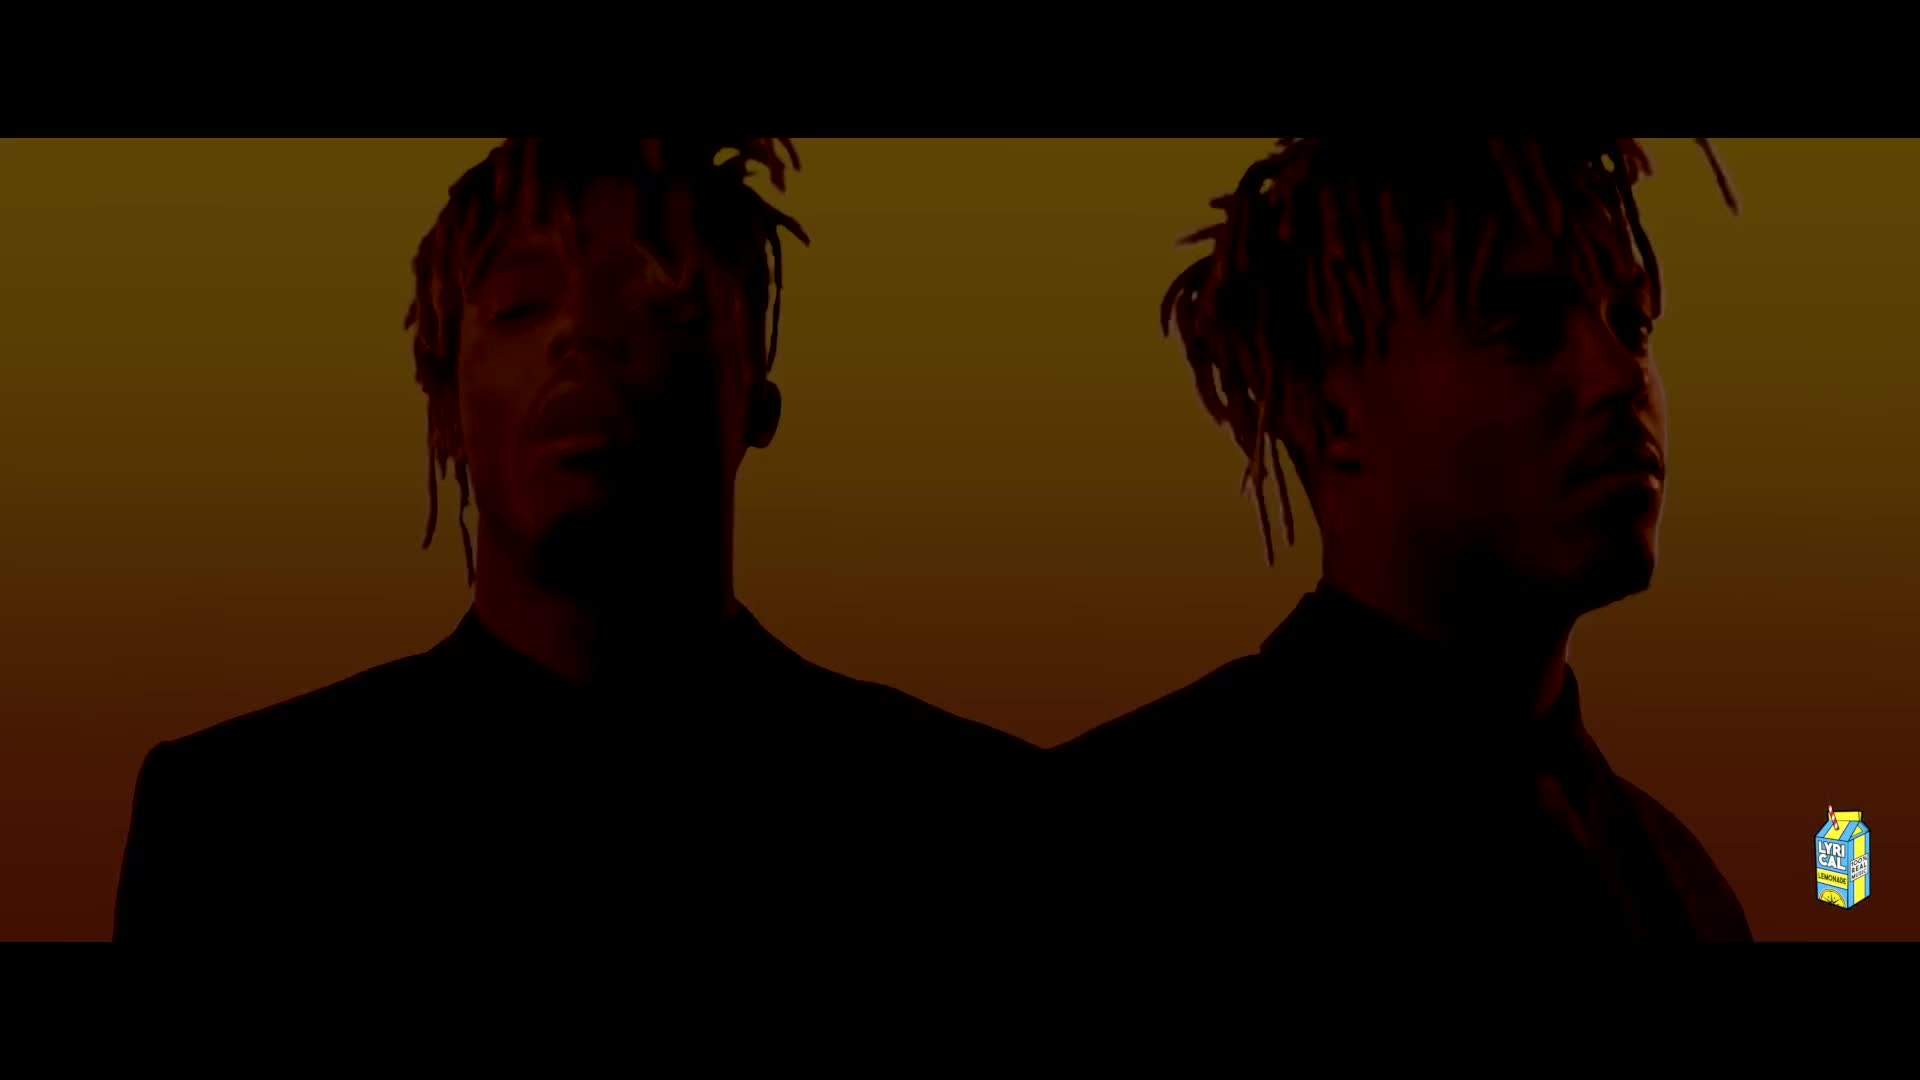 Lucid Dreams Juice Wrld Gifs Search | Search & Share on Homdor